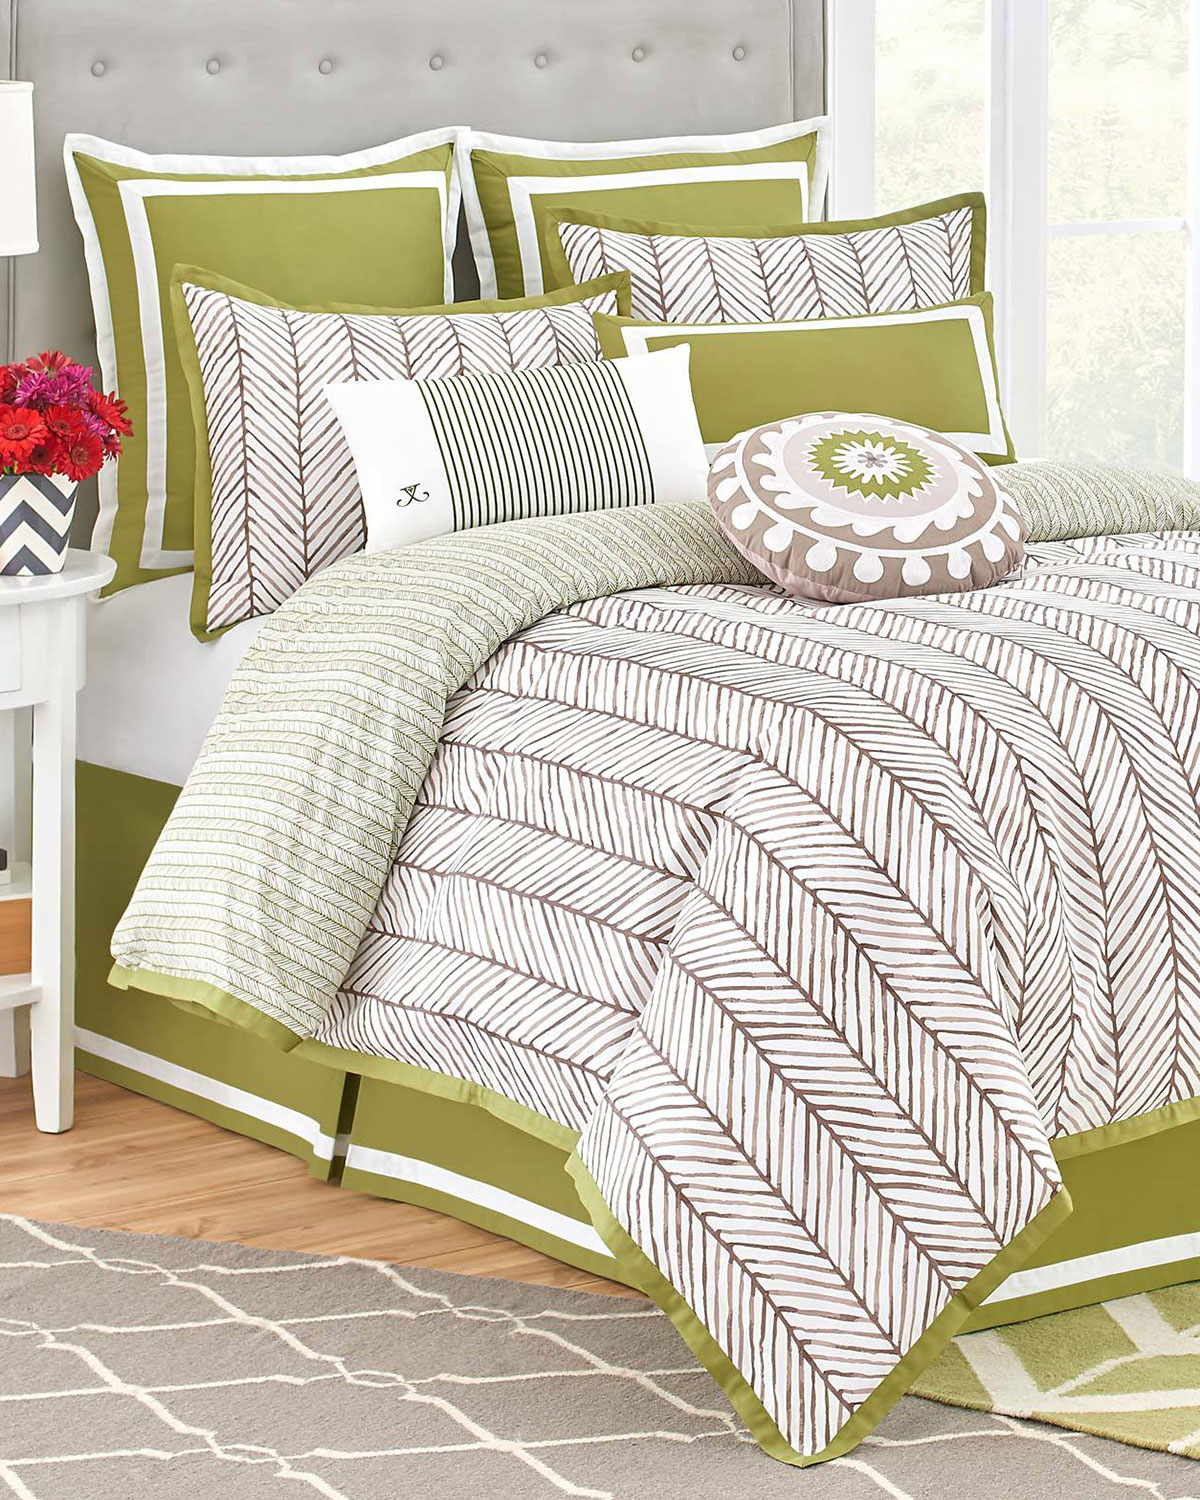 Full Arrows 4-Piece Comforter Set